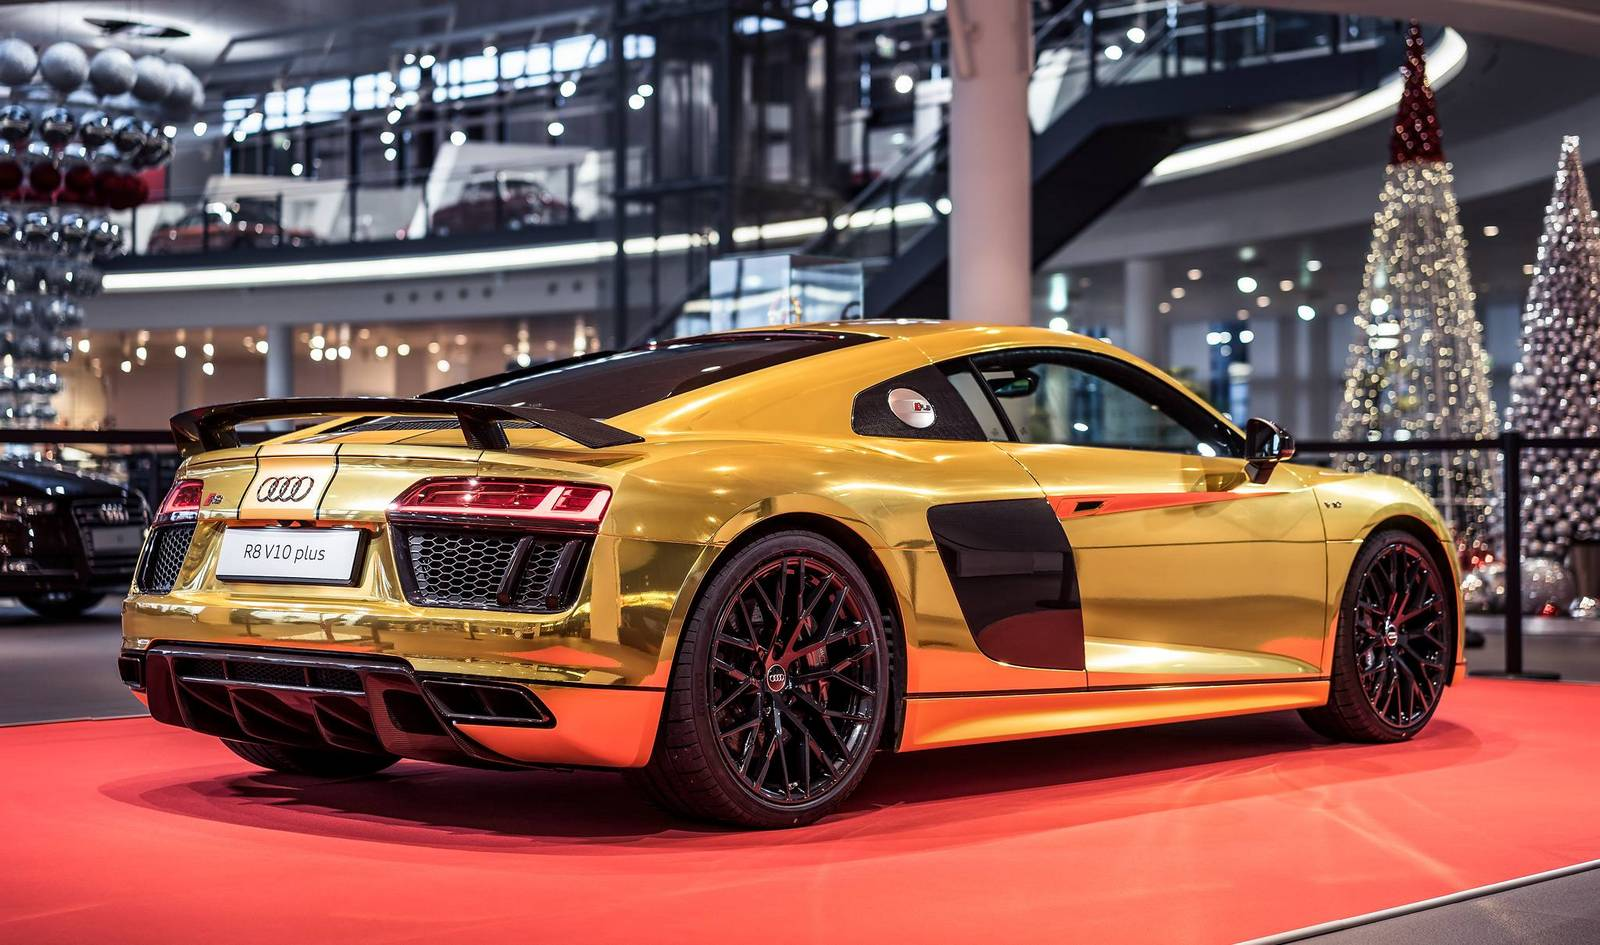 Chrome Gold Audi R8 V10 Plus Stands Out Properly